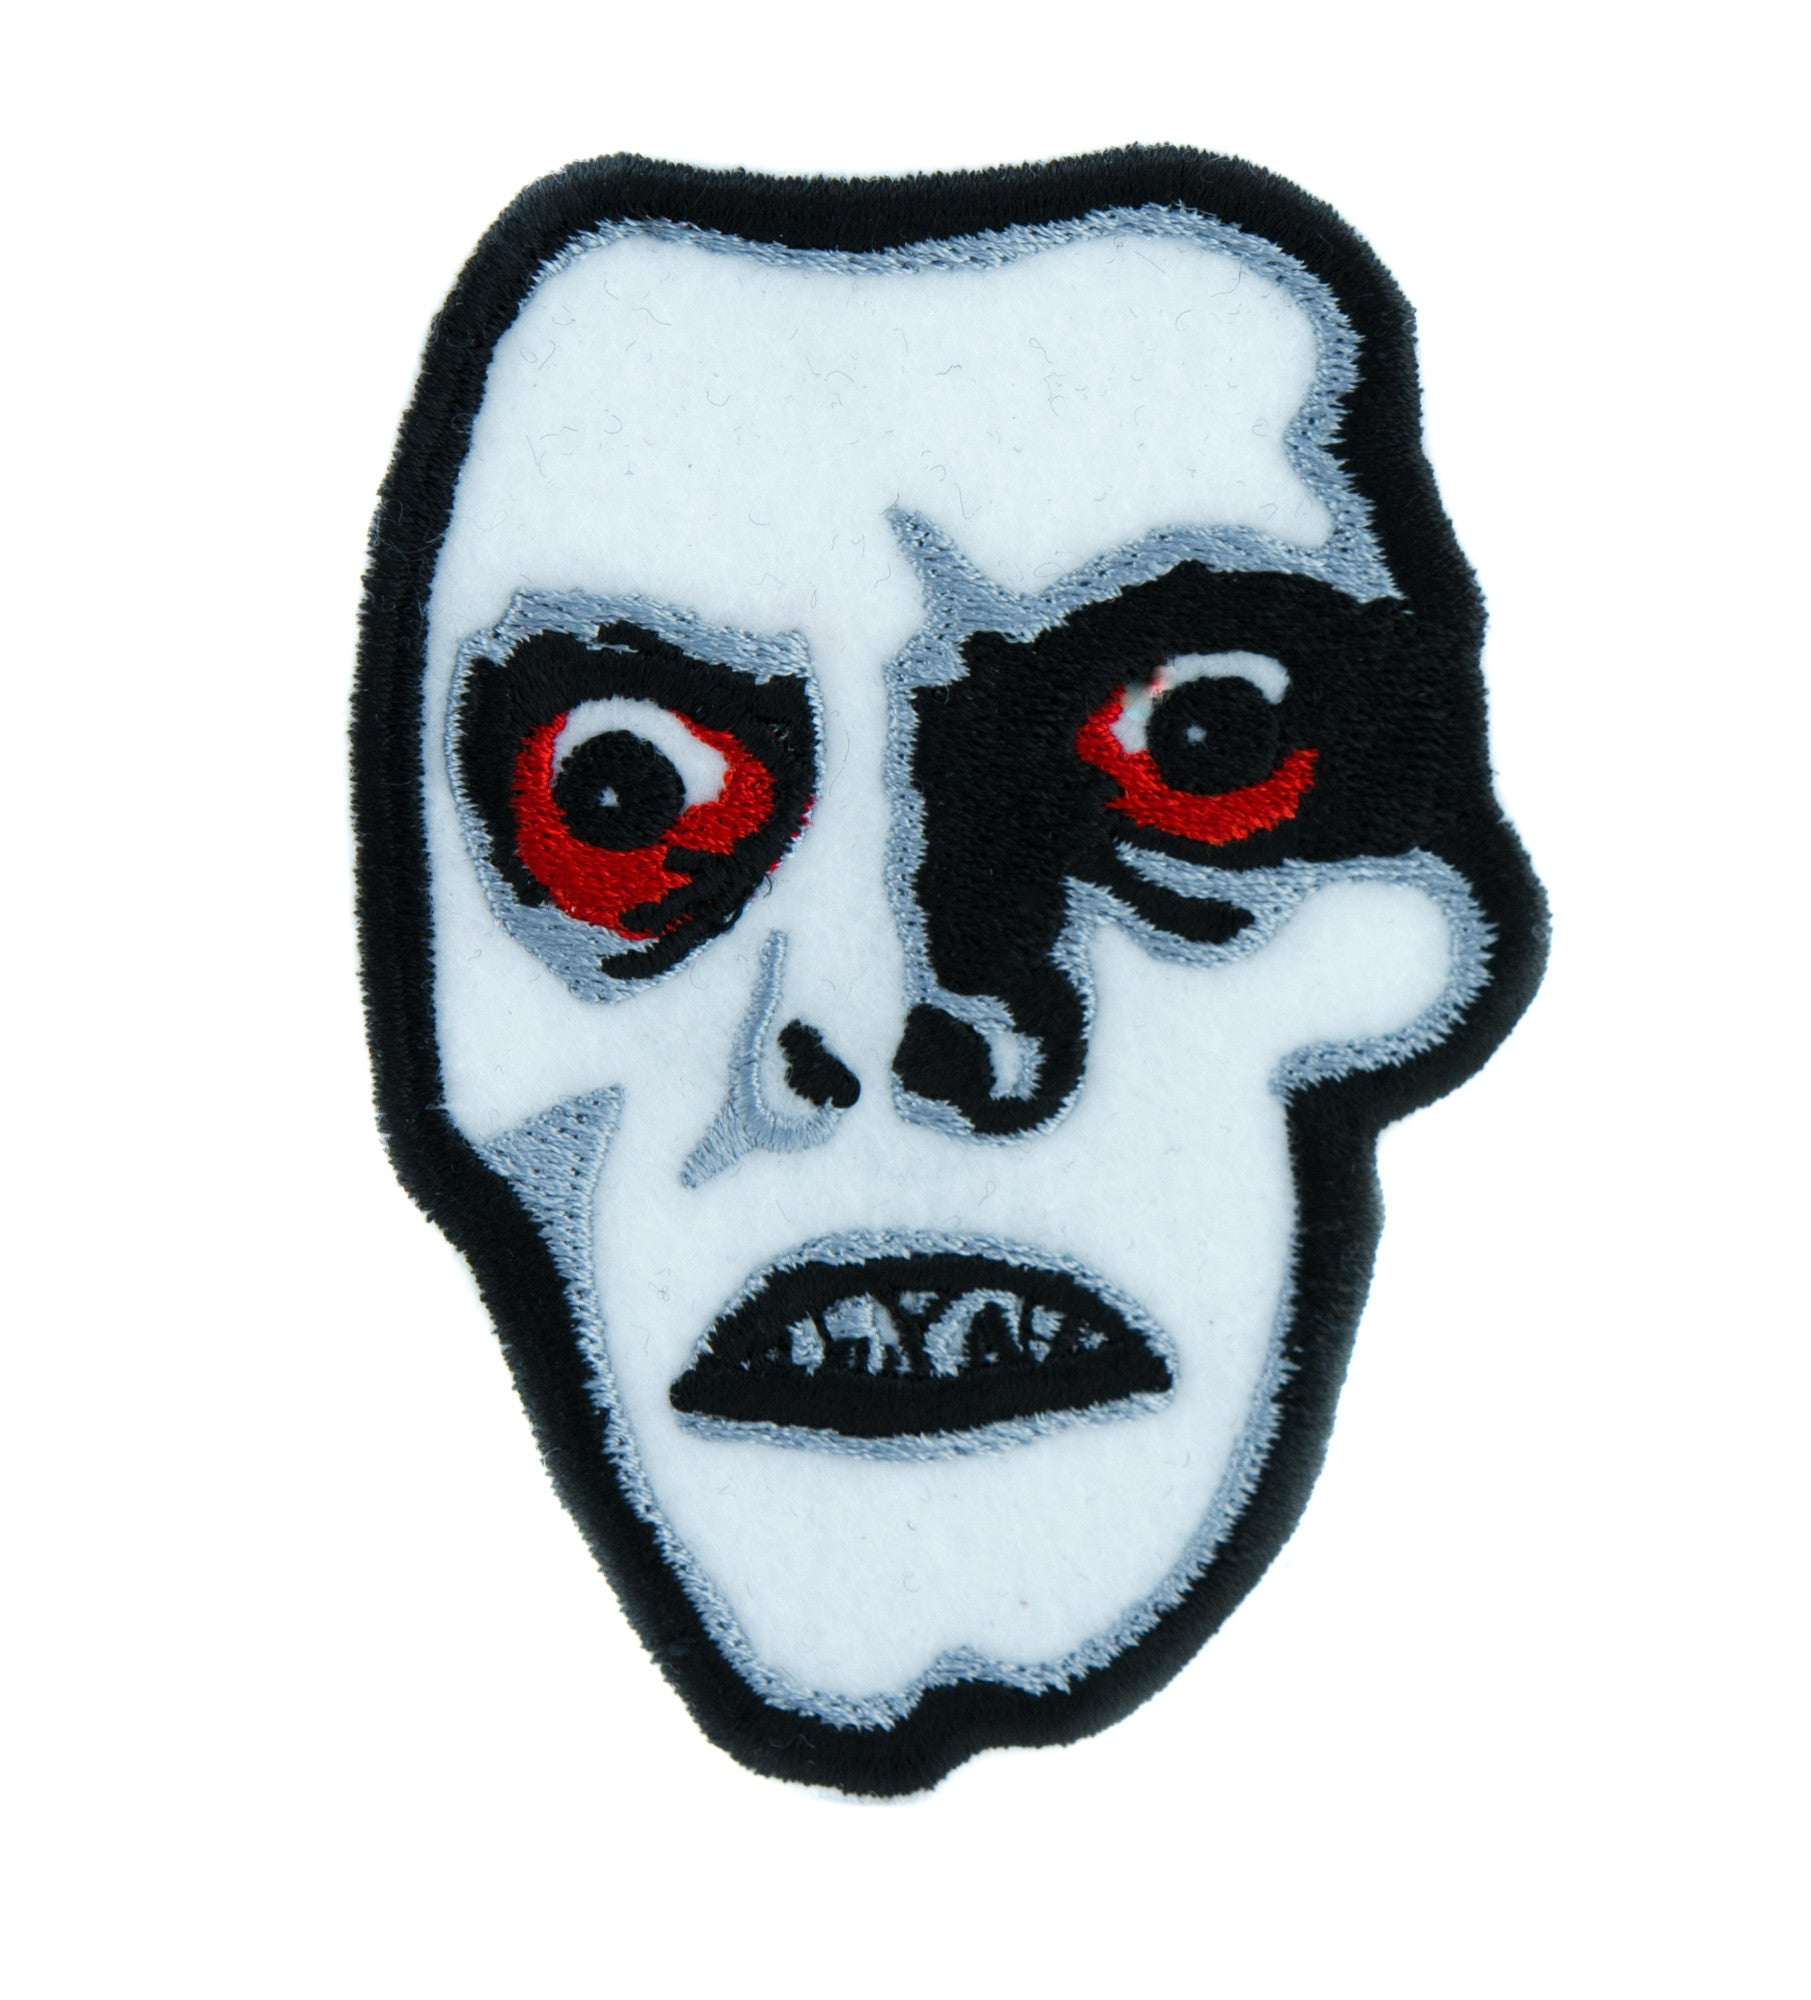 Captain Howdy Pazuzu The Exorcist Iron on Applique Cult Clothing Classic Horror Movie